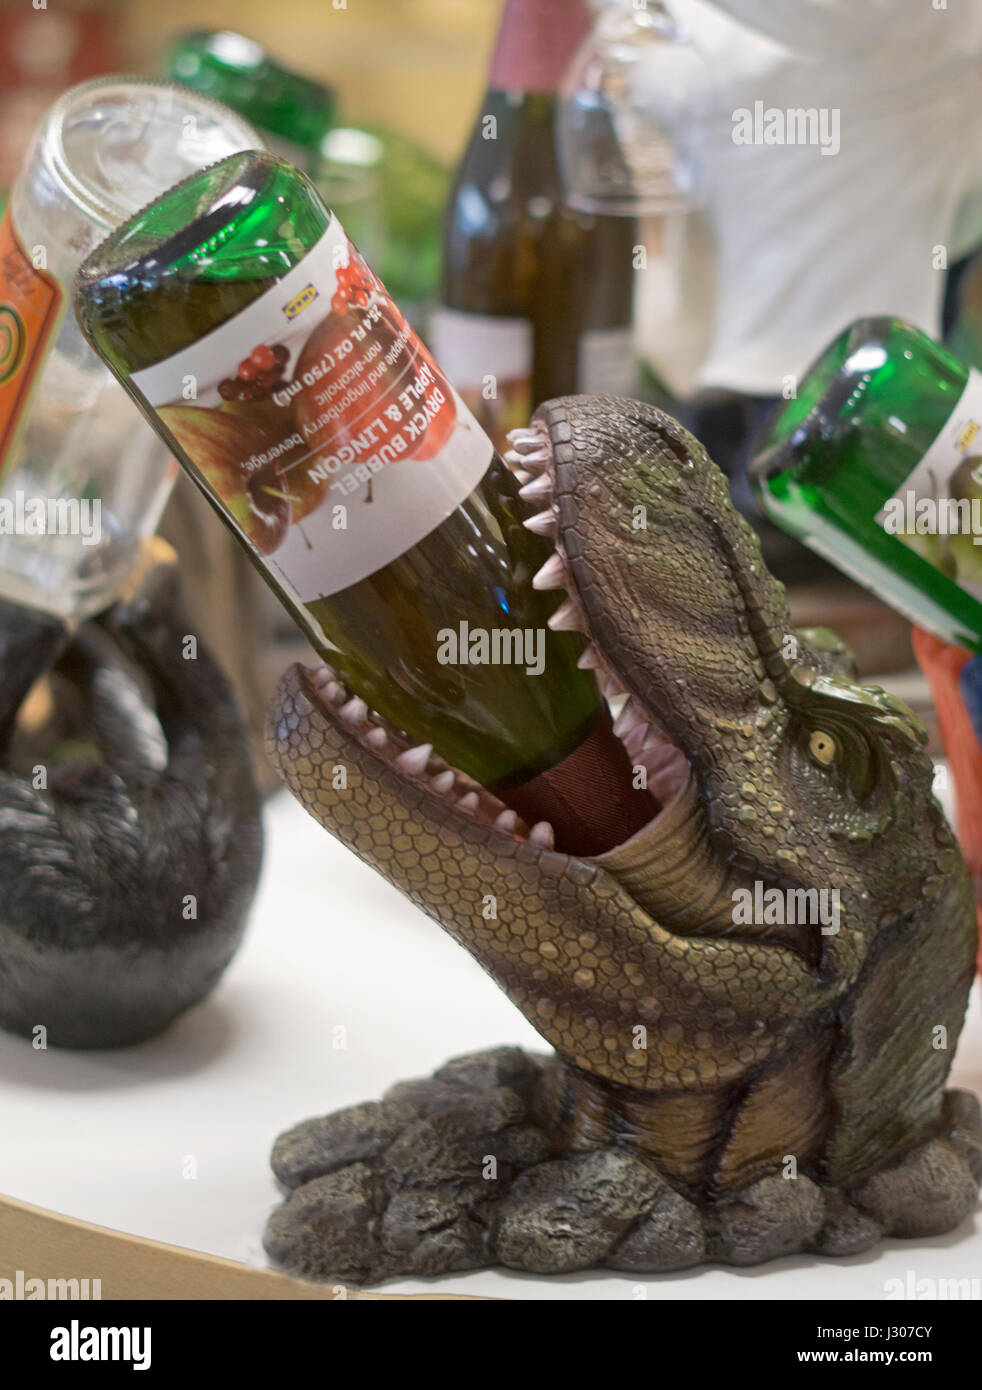 A alligator wine bottle holder for sale at Gizmos & Gadgets at the Tanger Outlet Mall in Deer Park Long Island, - Stock Image